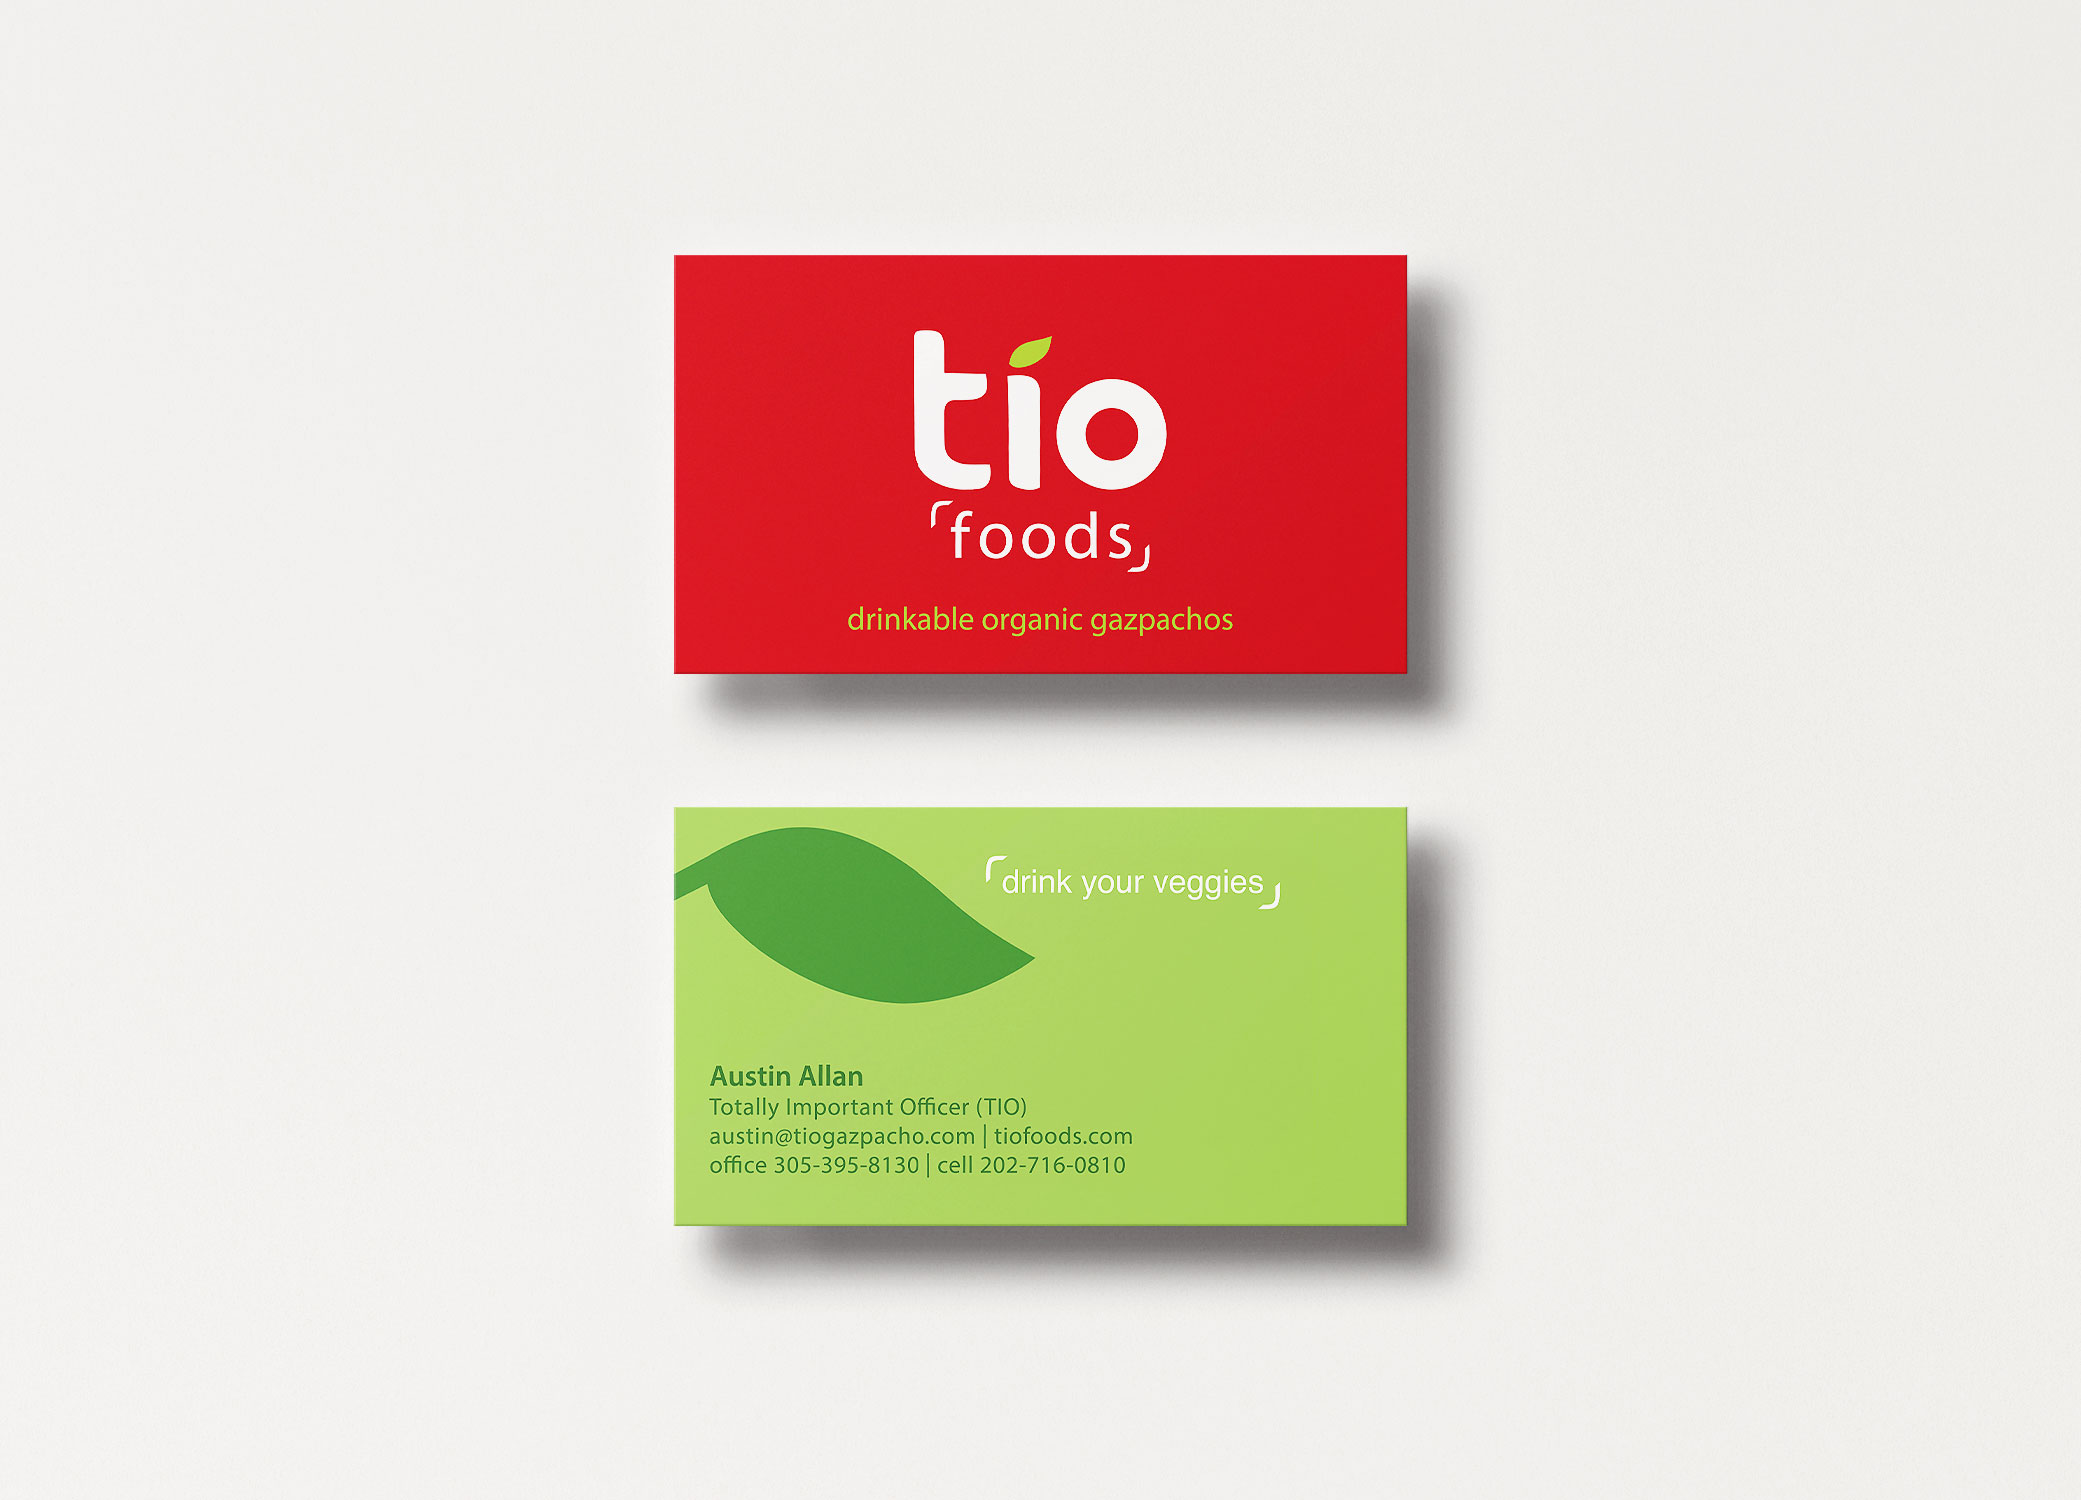 Tio Gazpacho red and green business cards arranged in stacks to show front and back.